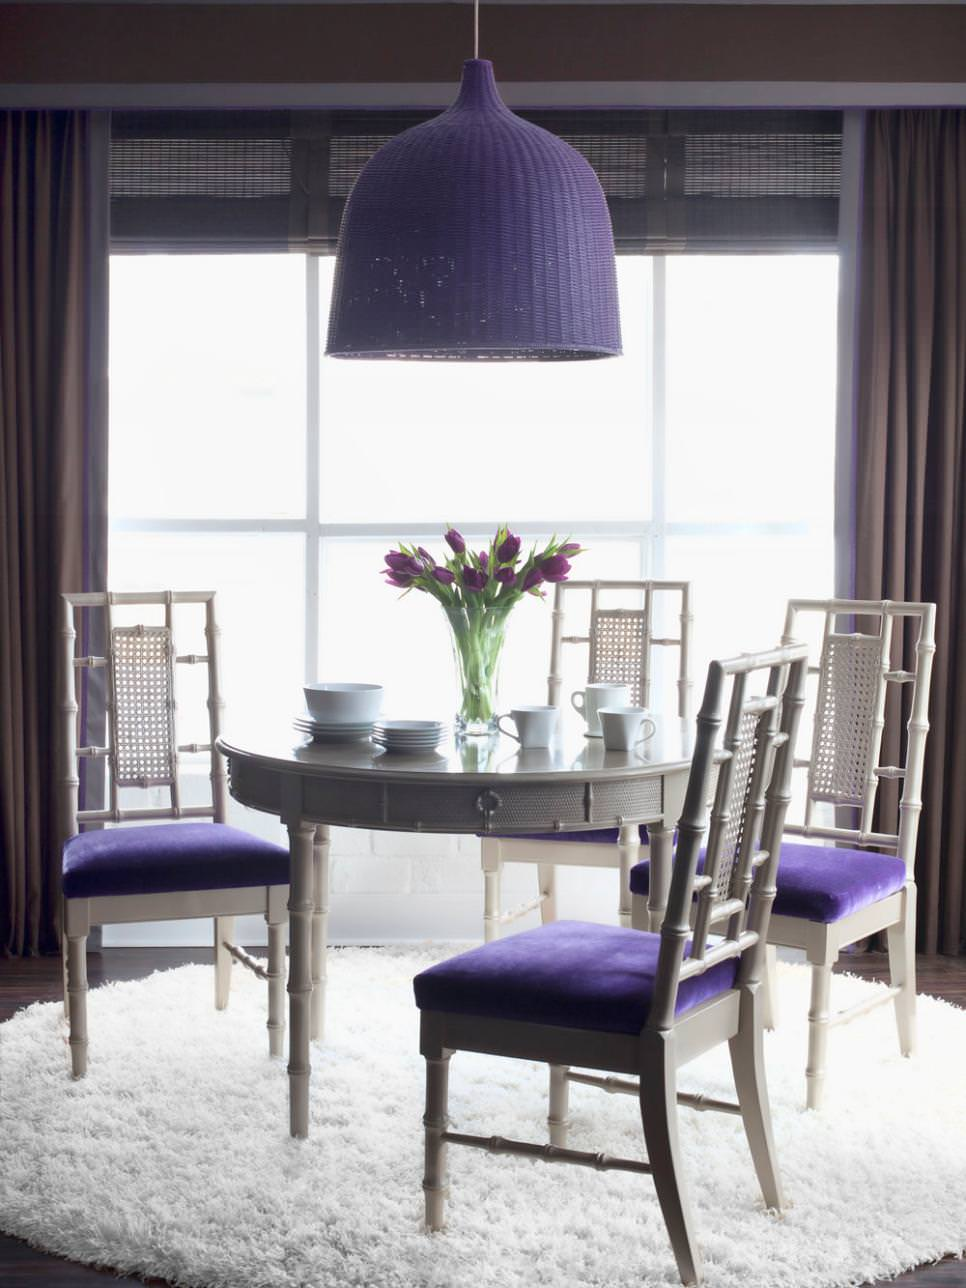 Chic Purple Dining Room Design